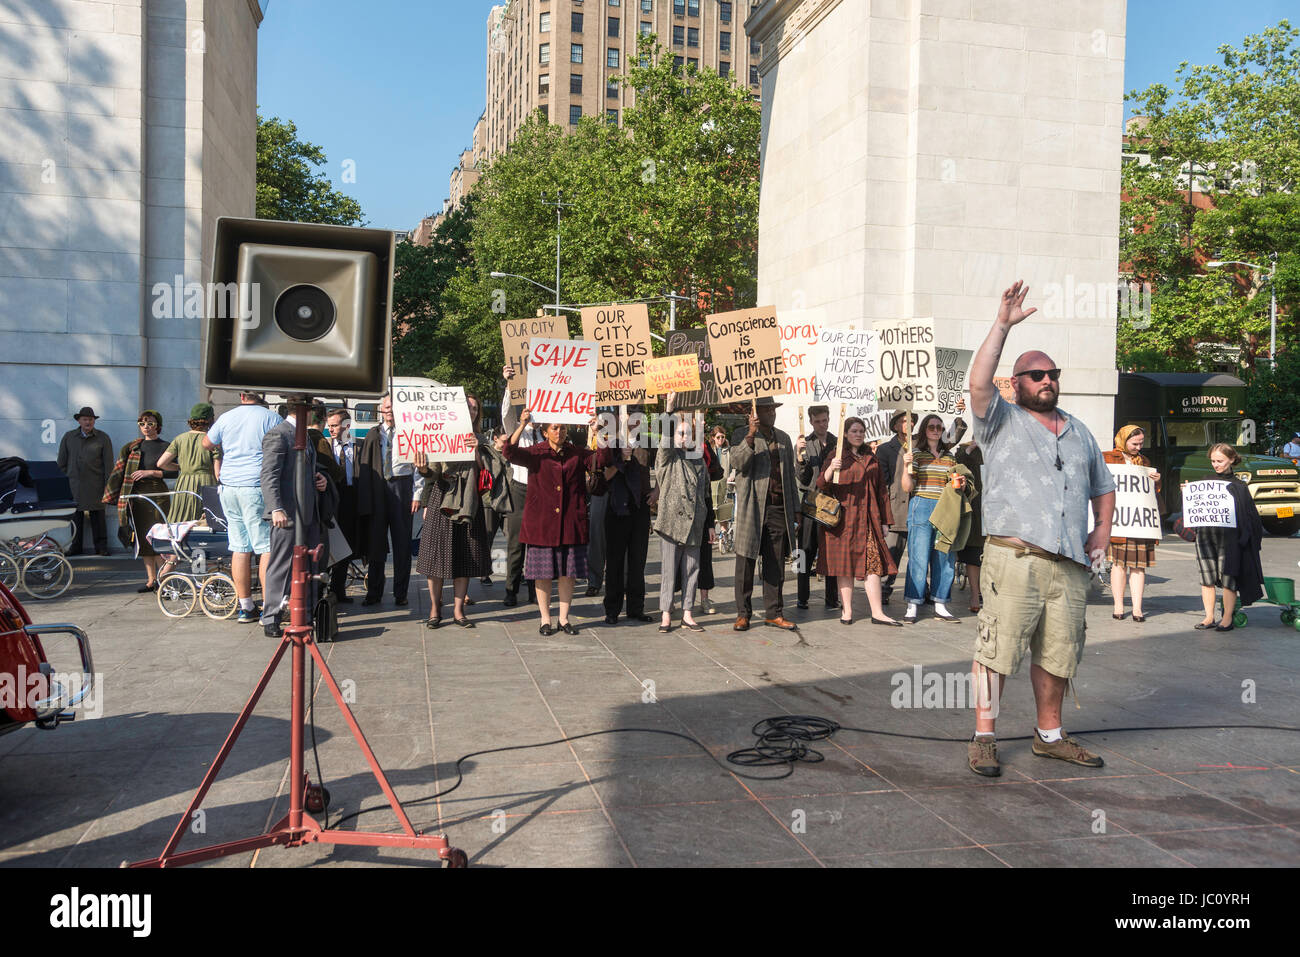 New York, NY 12 June 2017 On Location for the Amazon Prime tv series 'The Marvelous Mrs Maisel.' The episode - Stock Image